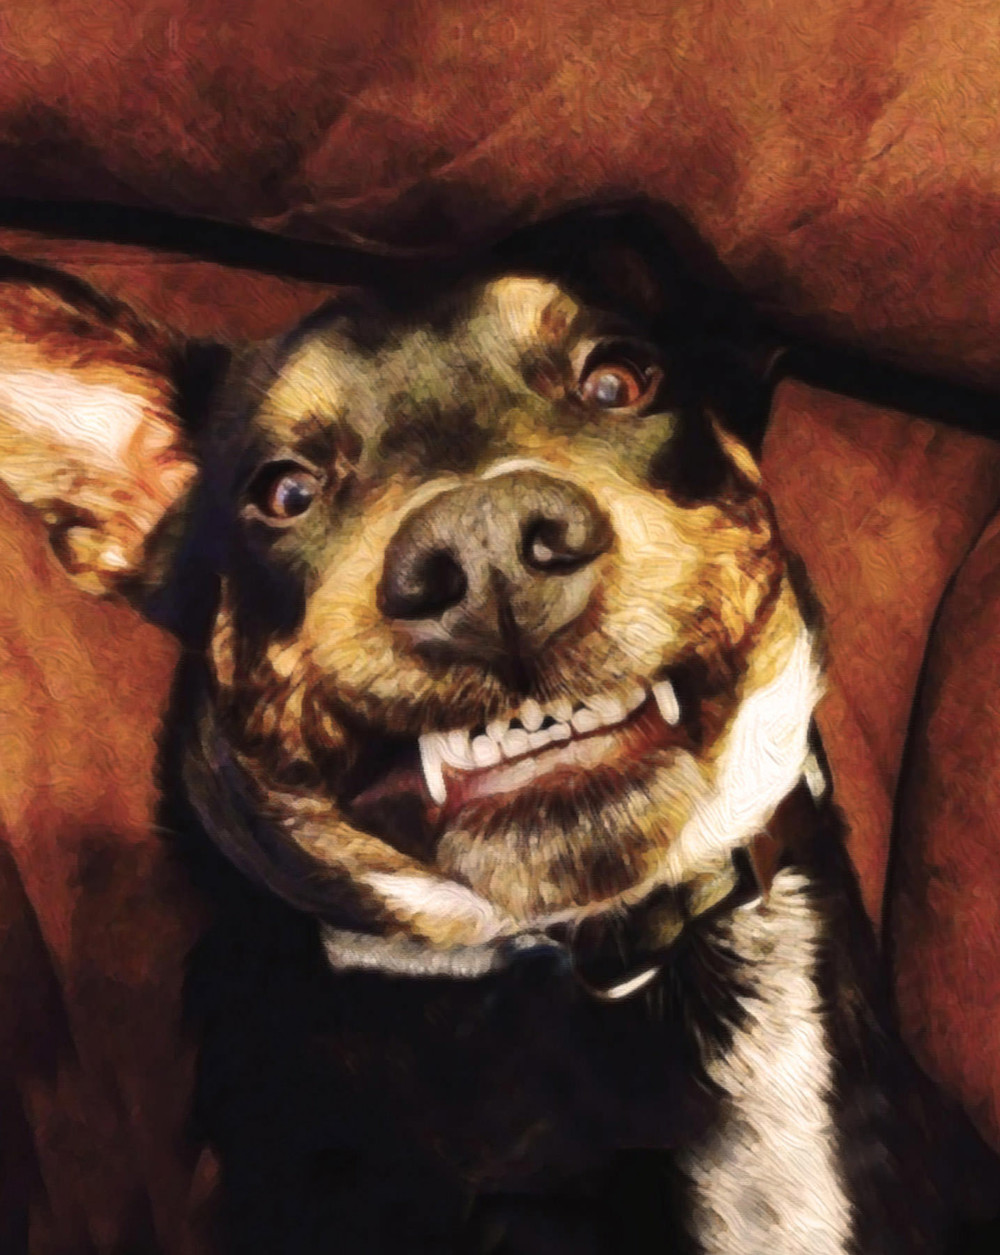 Funny faced smiling dog